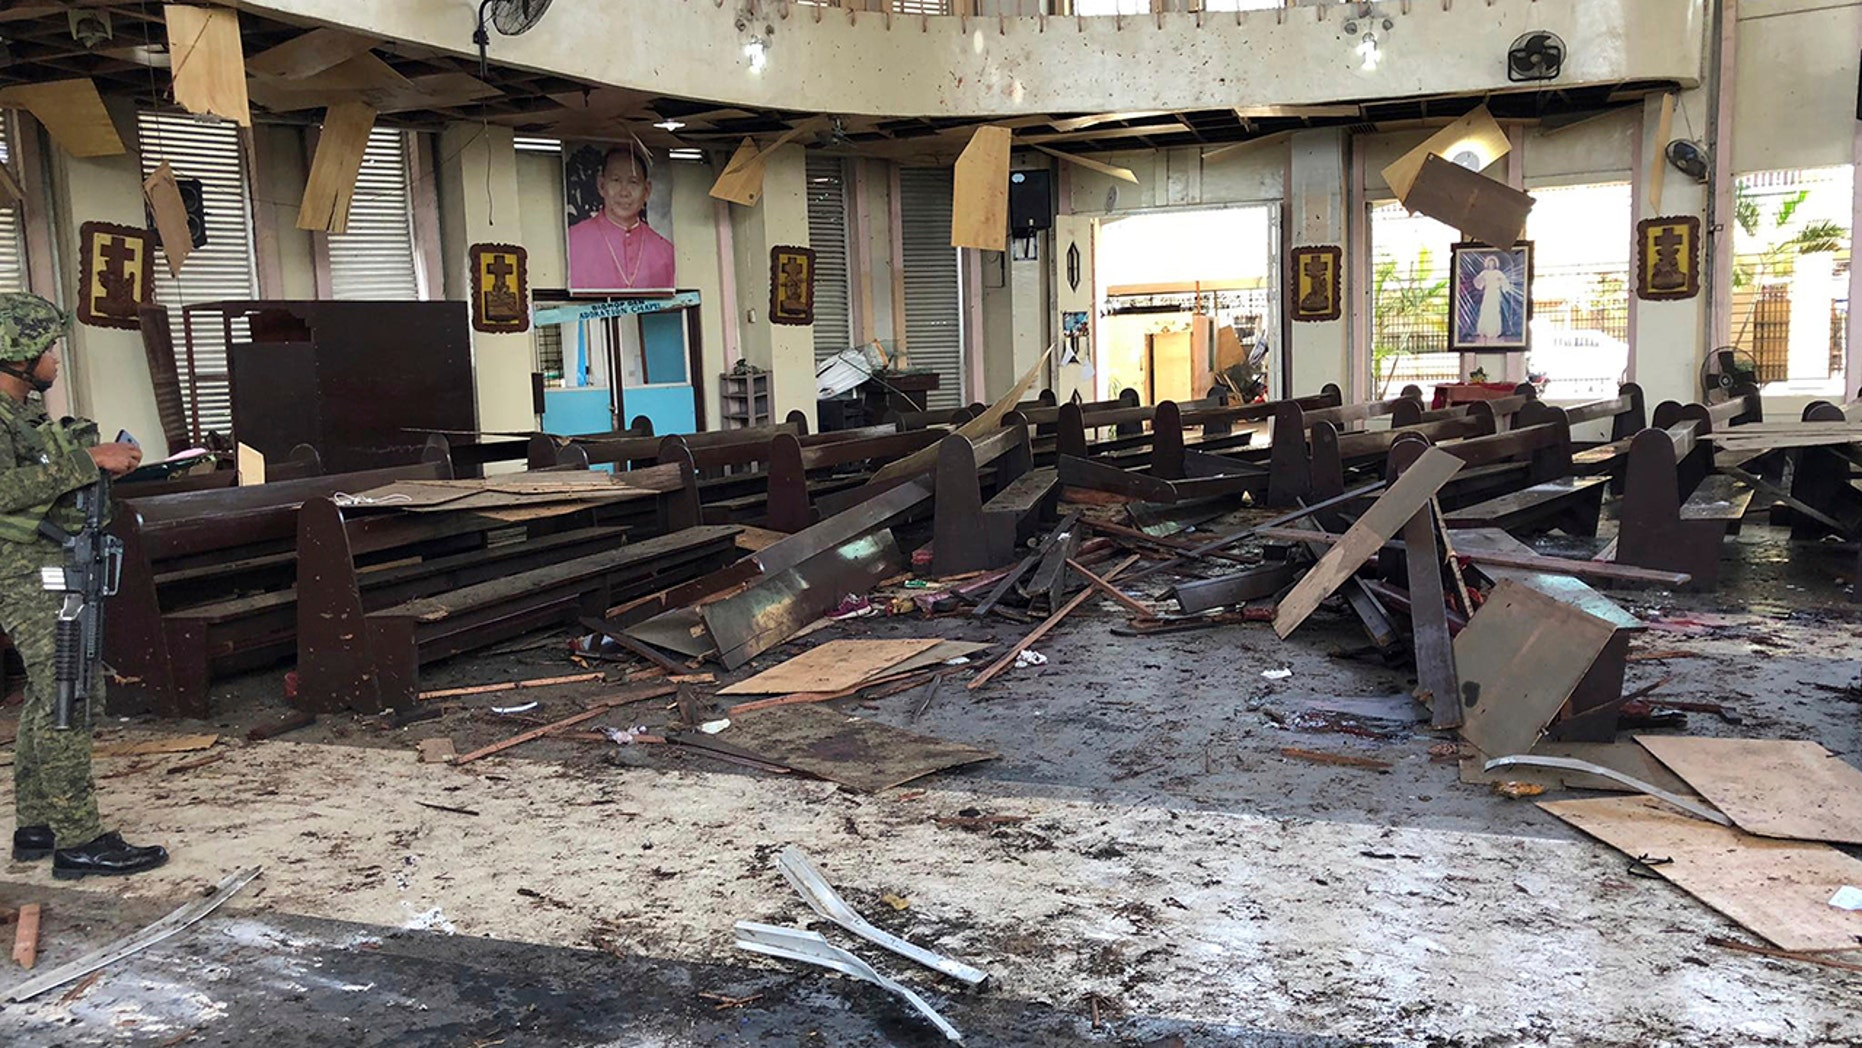 """A soldier looks at the site in a Roman Catholic cathedral in Jolo, the capital of Sulu province in the southern Philippines, after two bombs exploded on Sunday, January 27, 201<div class=""""e3lan e3lan-in-post1""""><script async src=""""//pagead2.googlesyndication.com/pagead/js/adsbygoogle.js""""></script> <!-- Text_Display_Responsive --> <ins class=""""adsbygoogle""""      style=""""display:block""""      data-ad-client=""""ca-pub-6192903739091894""""      data-ad-slot=""""3136787391""""      data-ad-format=""""auto""""      data-full-width-responsive=""""true""""></ins> <script> (adsbygoogle = window.adsbygoogle 